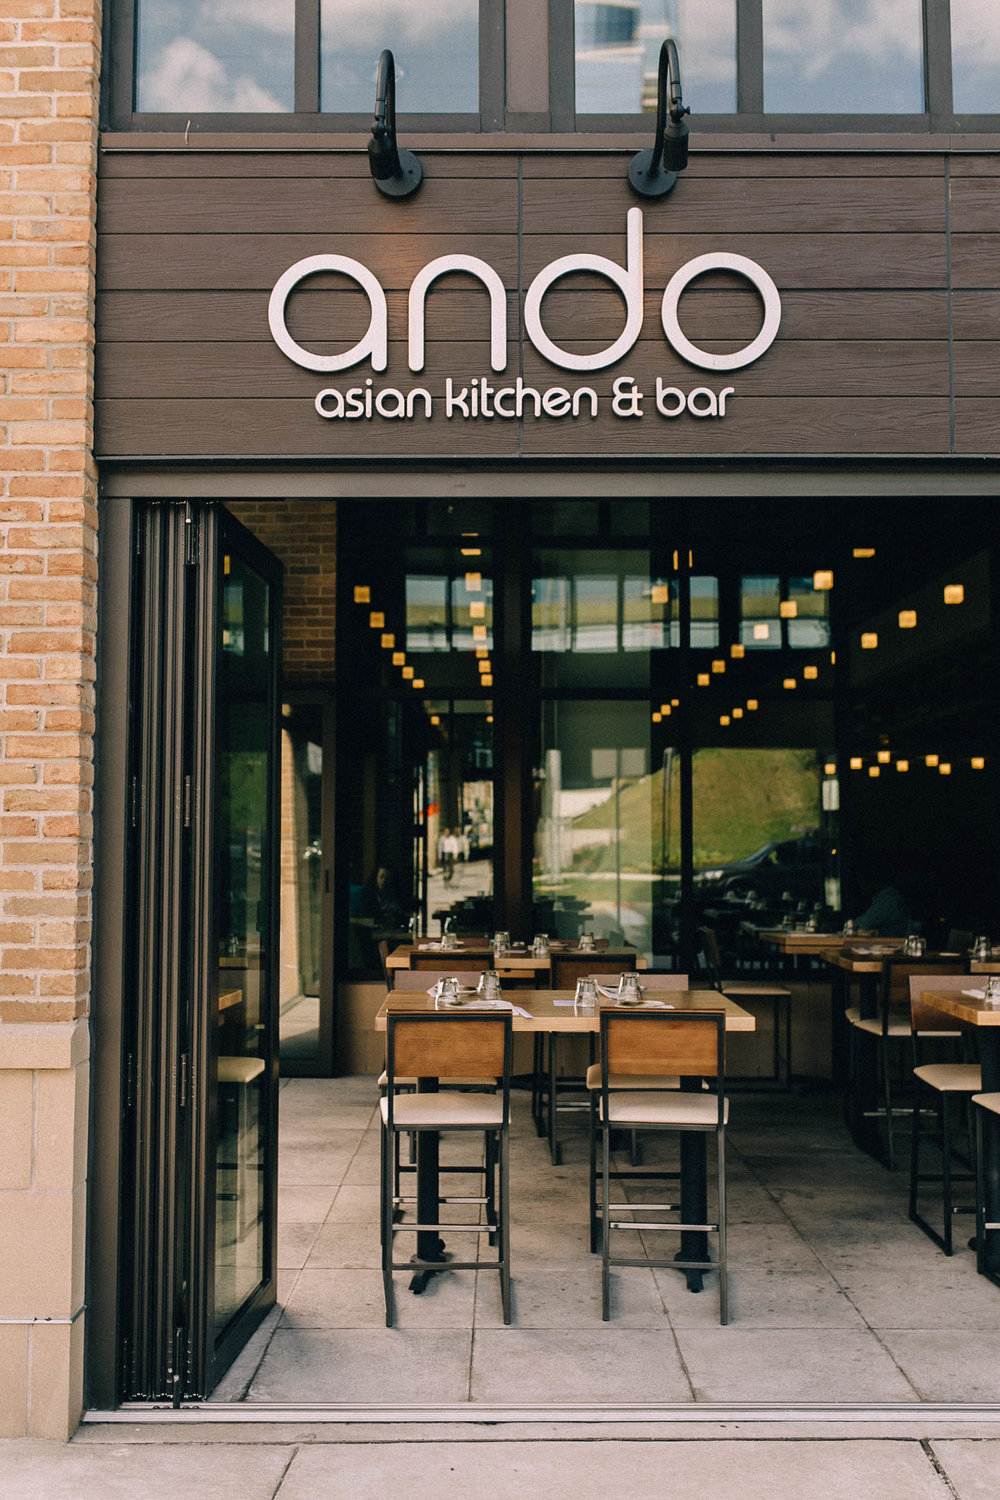 andopatio.jpg